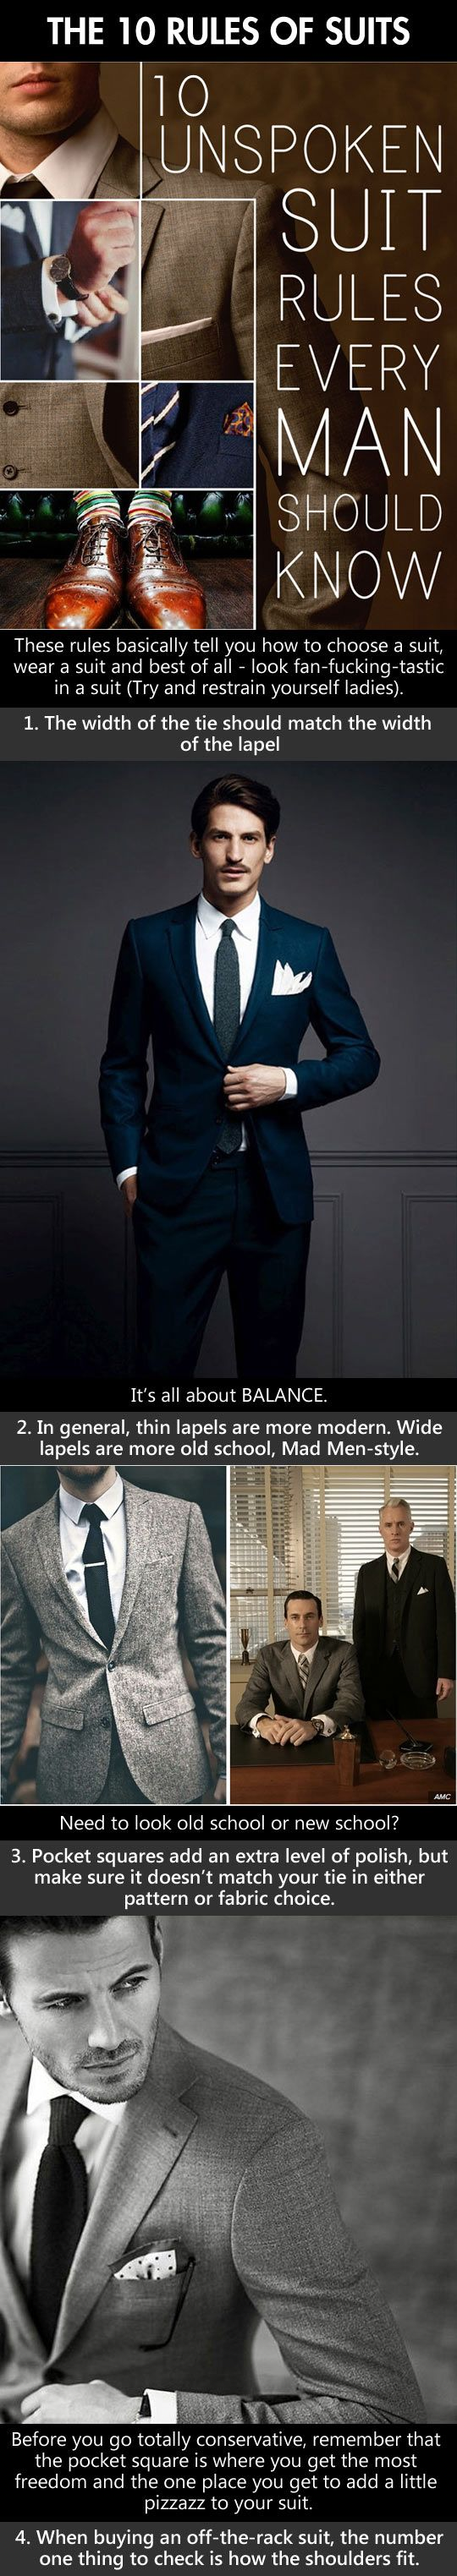 Style Tips:  Are you thinking of buying a Suit?  Wait!  Read this before heading out shopping.  10 unspoken suit rules every man should know.  ===> Follow us on Pinterest for Style Tips, Men's Essentials, updates on our SALES etc... ~ VujuWear